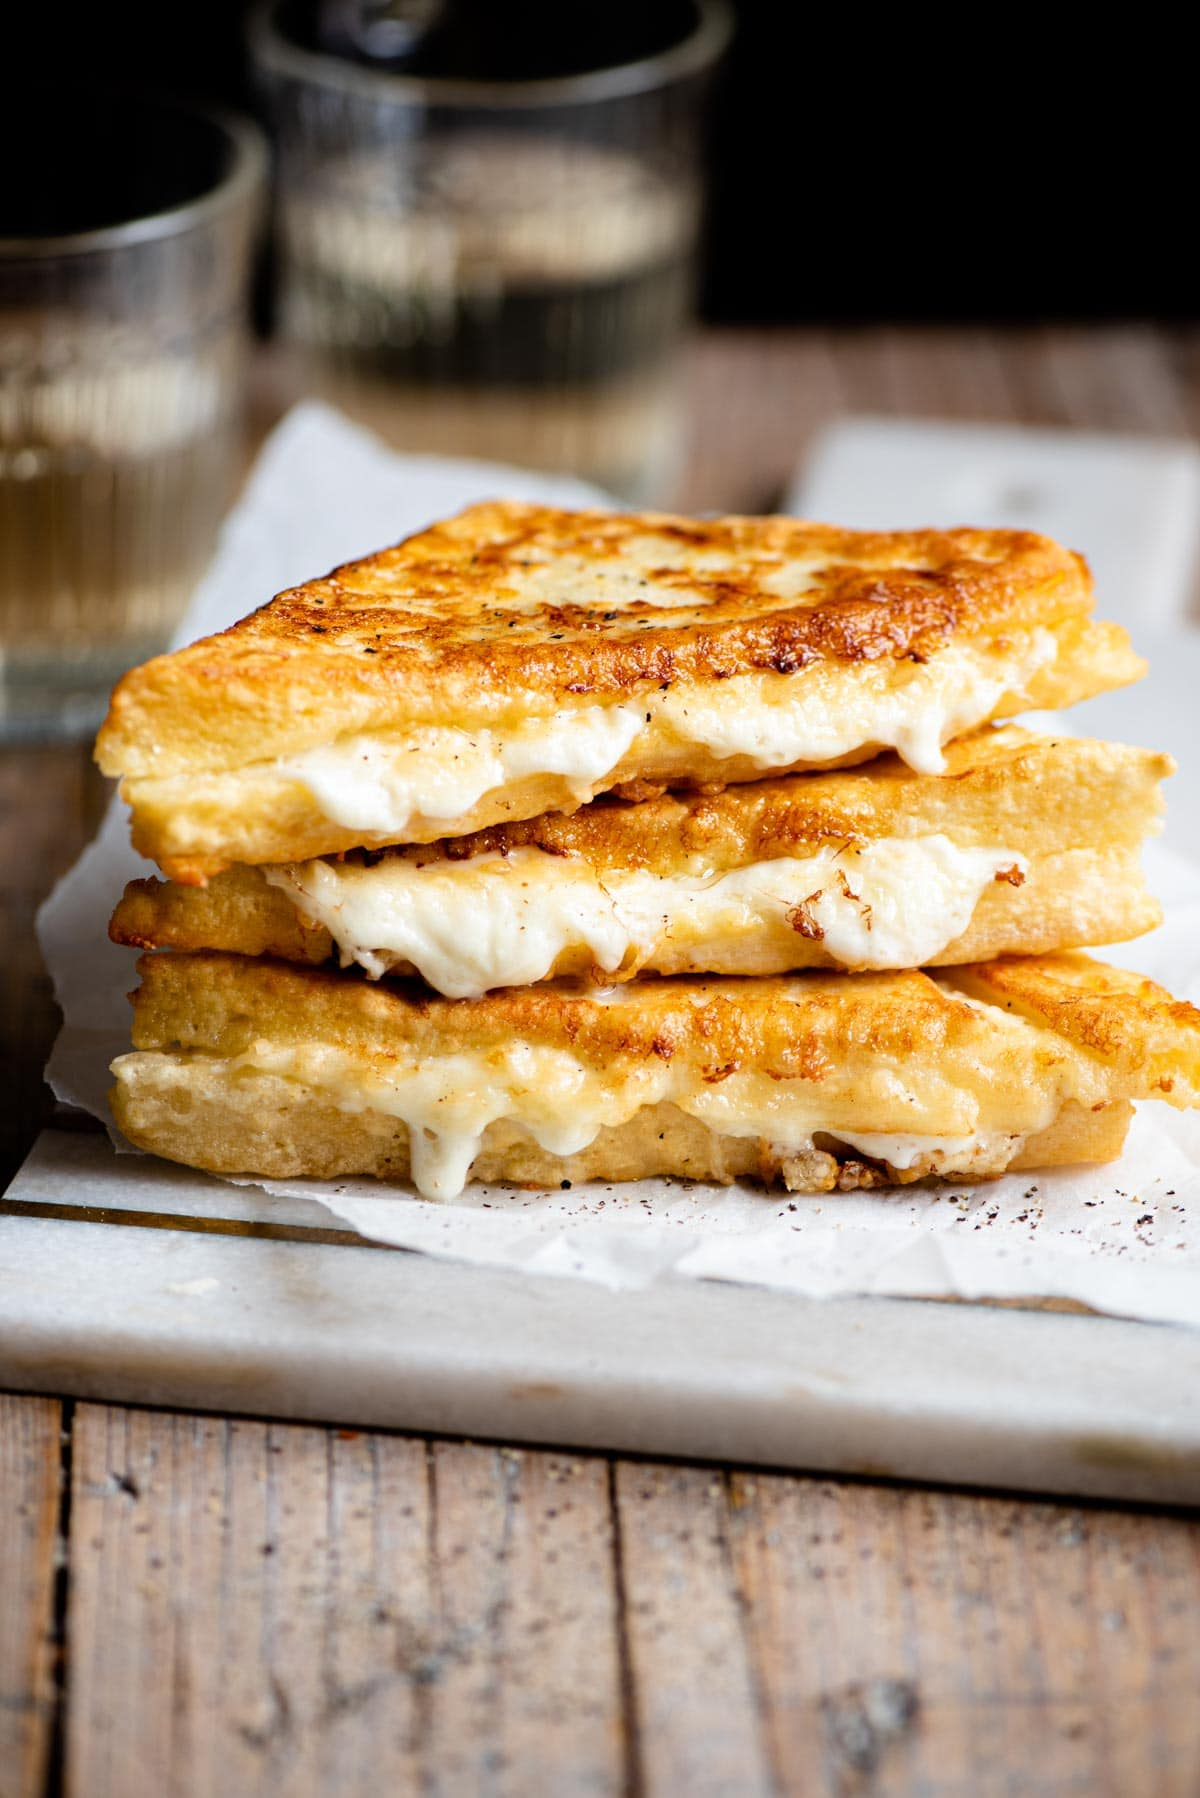 Three fried mozzarella sandwiches stacked on top of each other